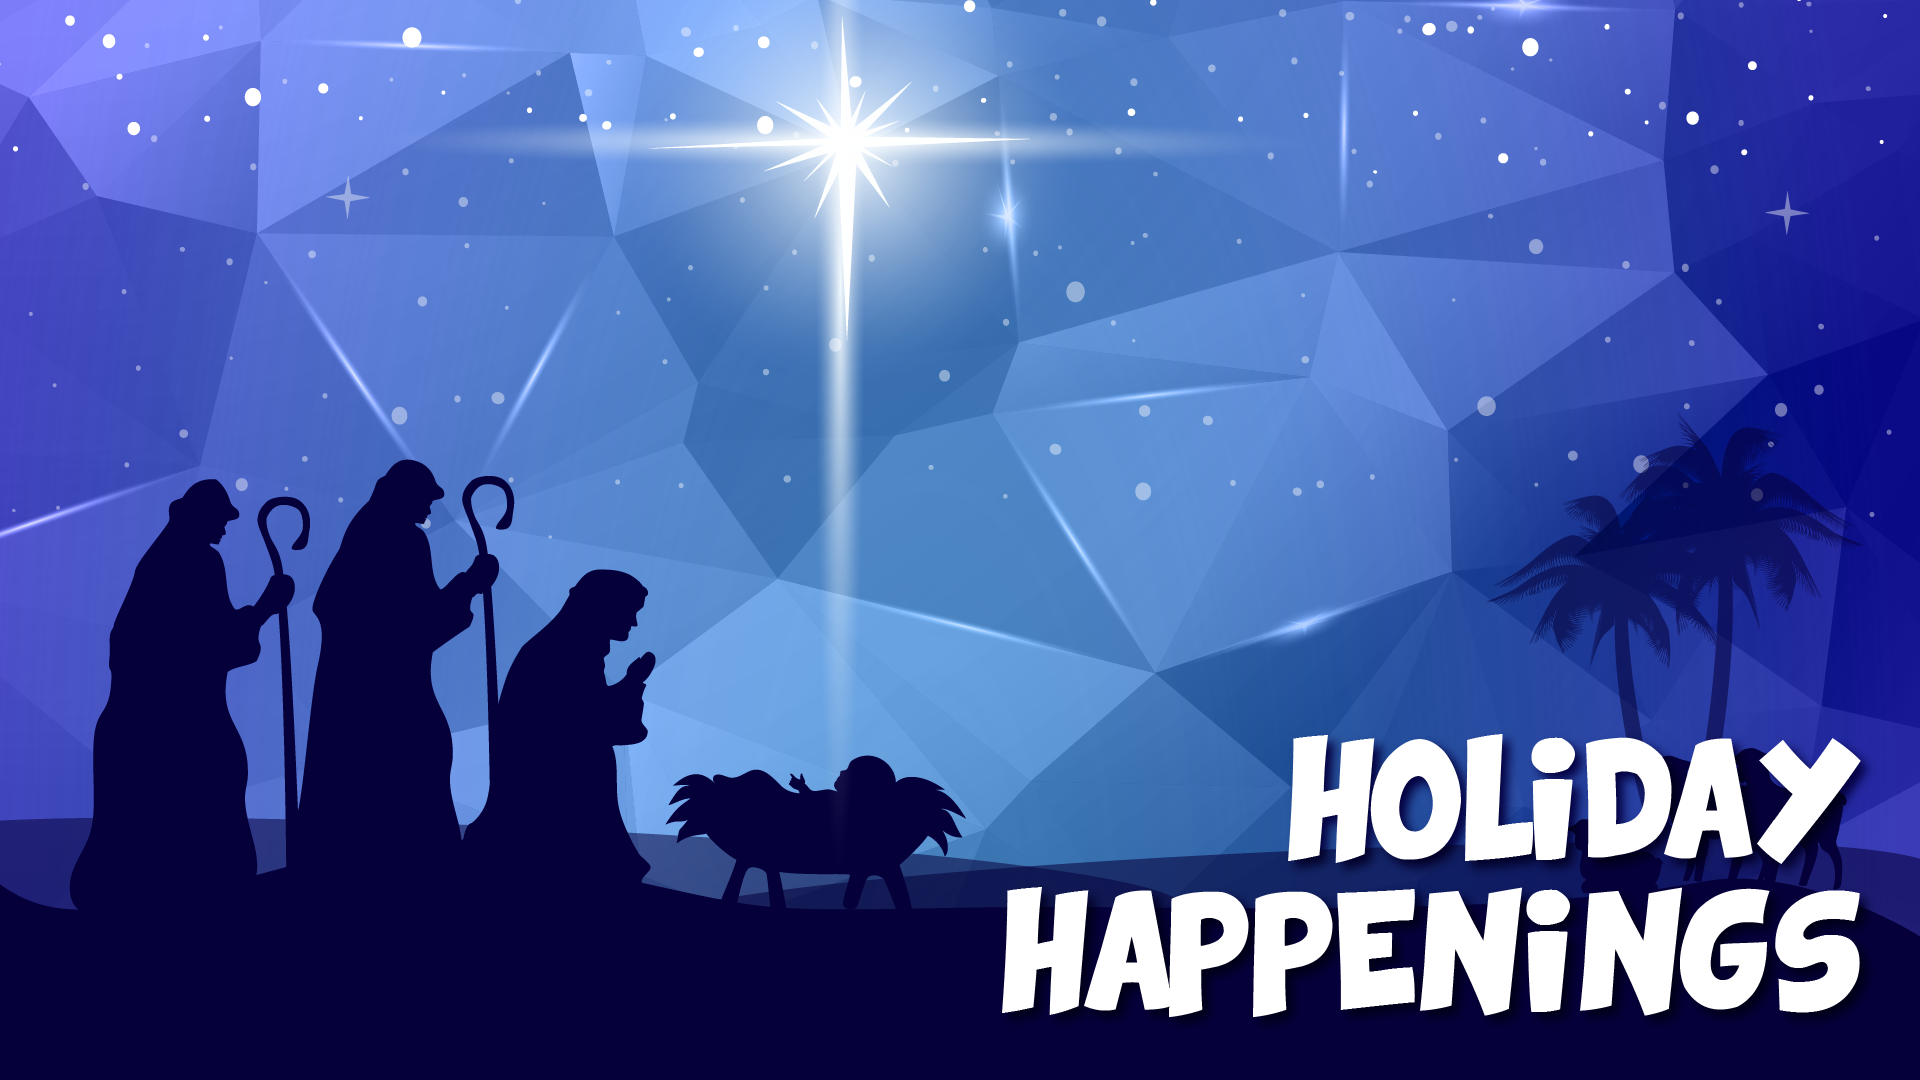 THEME-Holiday Happenings.png